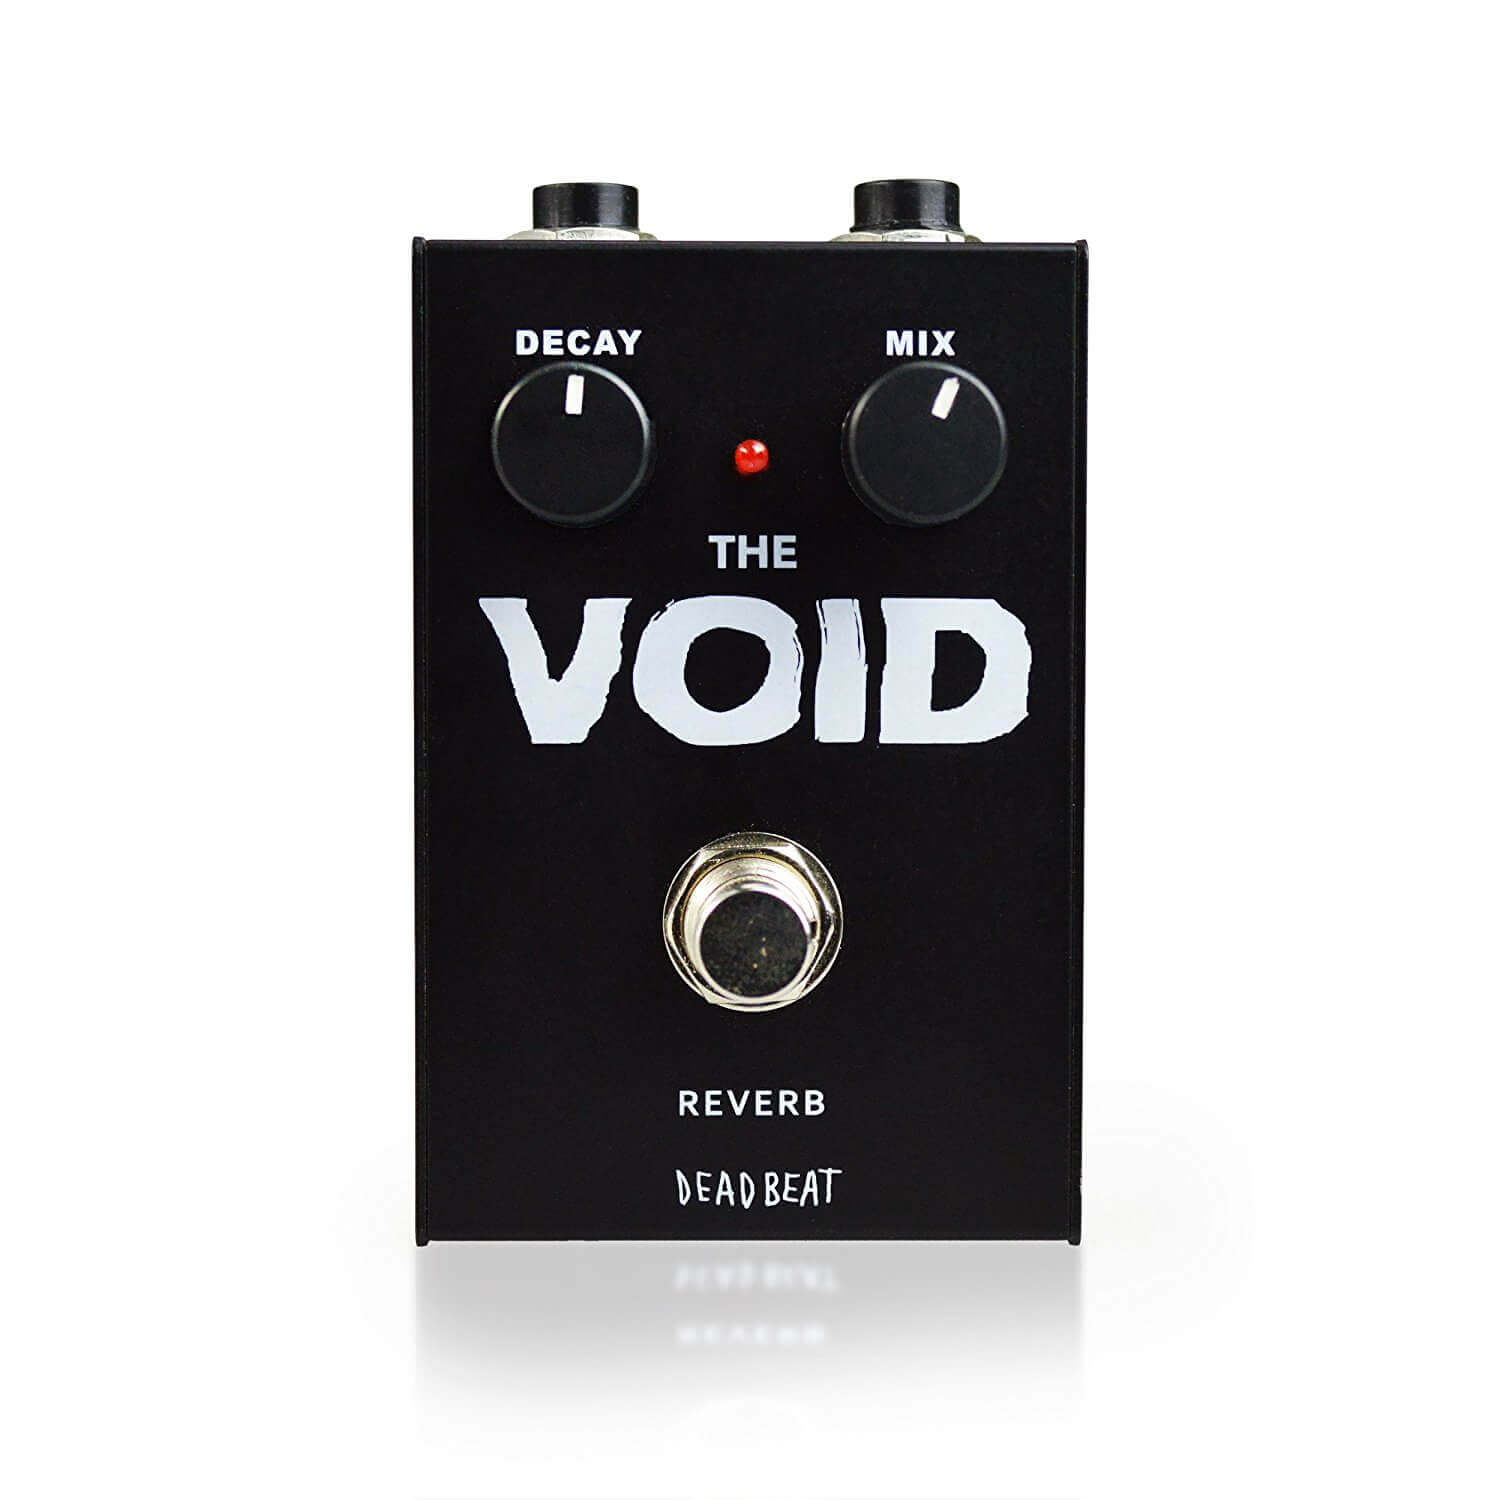 the void reverb effect pedal by deadbeat sound review guitar pedals on the cheap. Black Bedroom Furniture Sets. Home Design Ideas